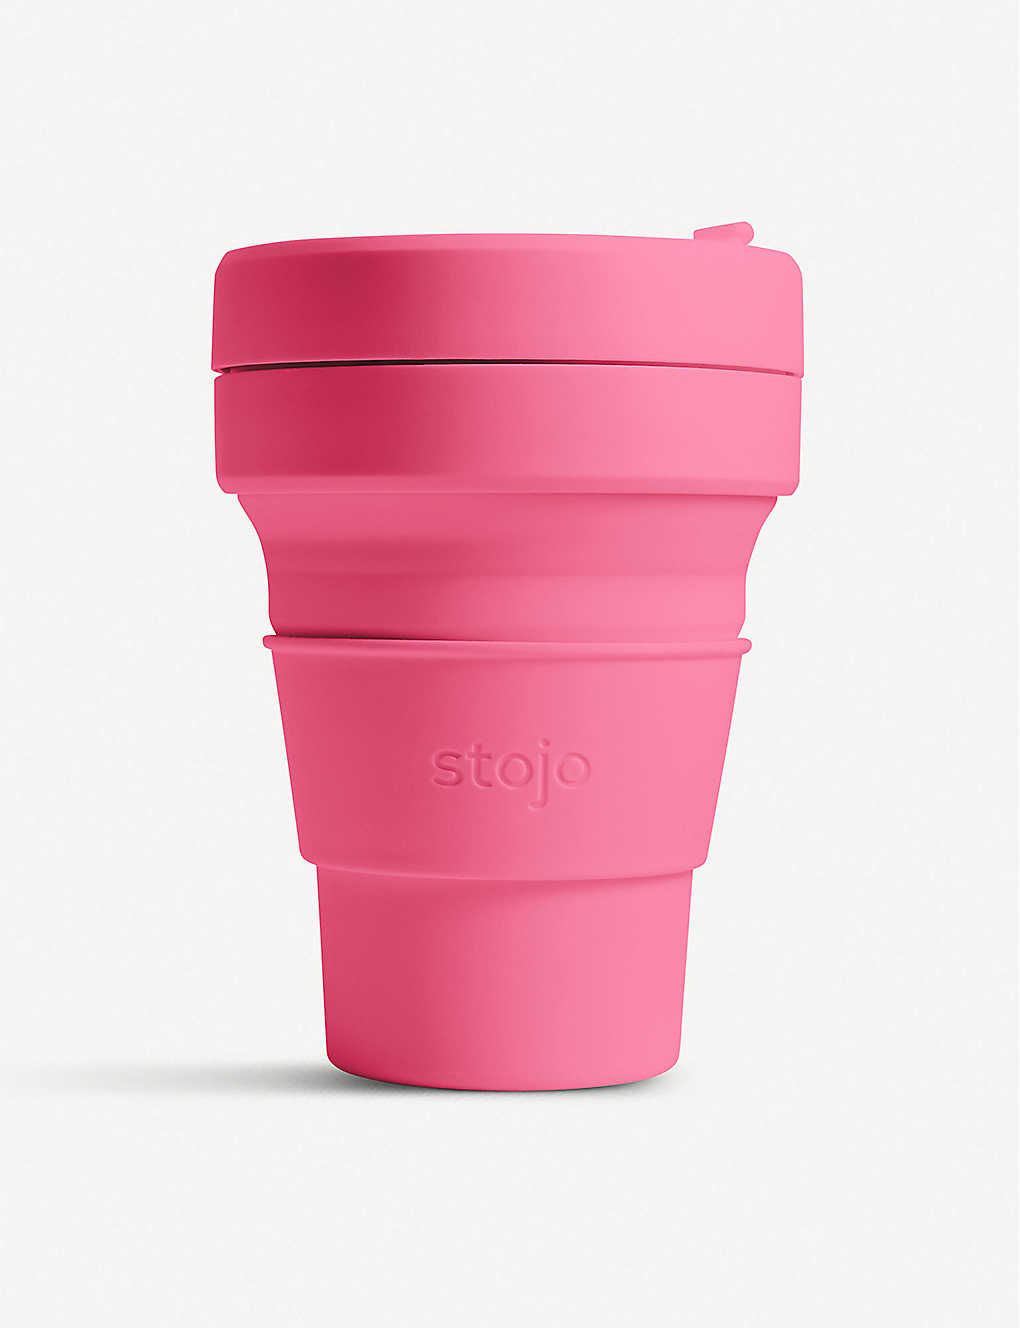 STOJO: Brooklyn collapsible travel mug 355ml